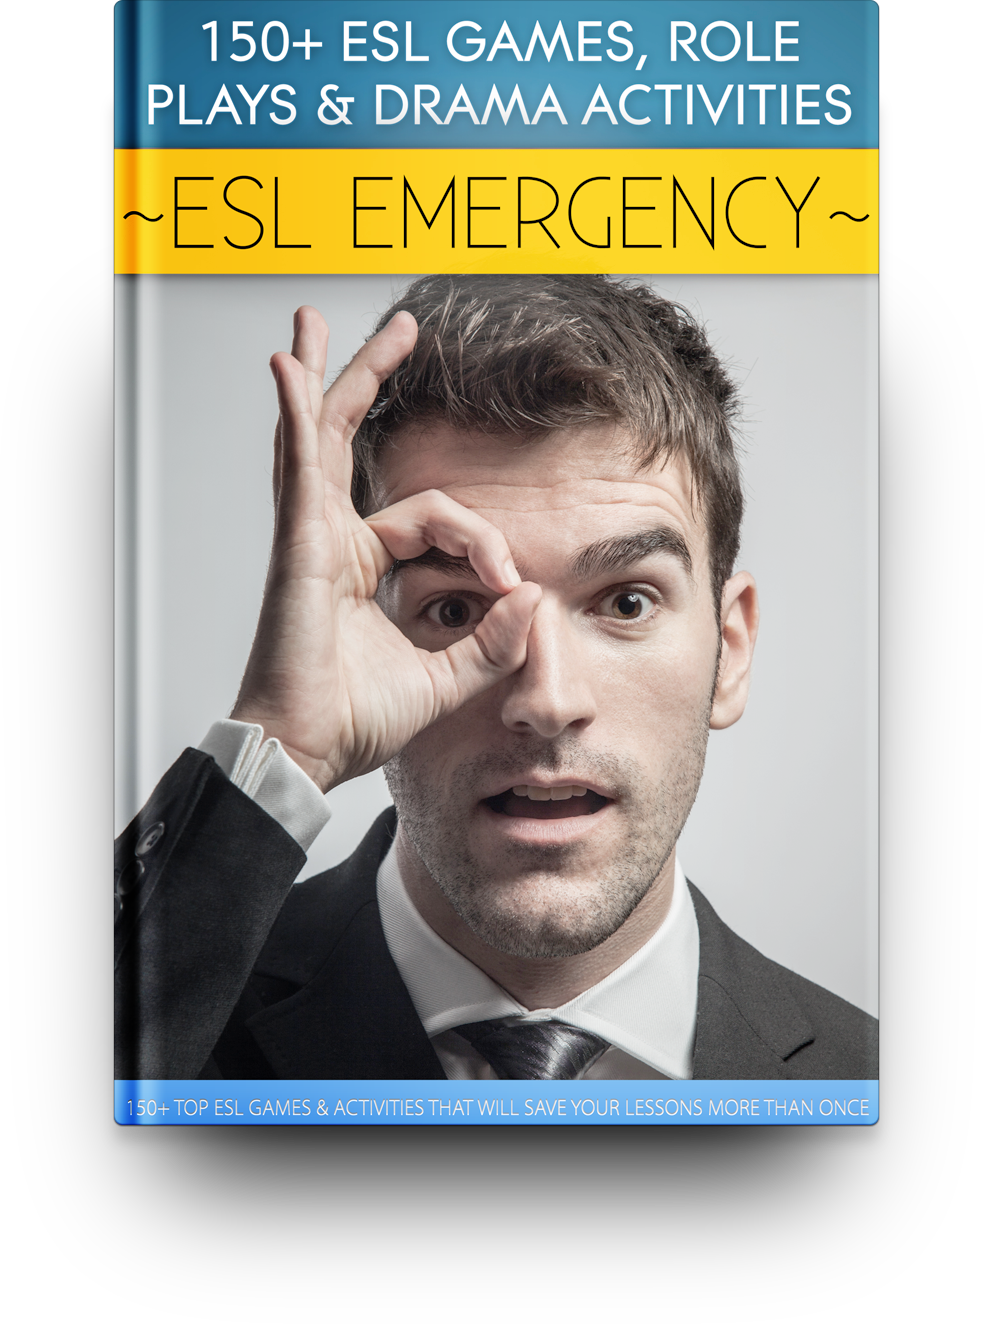 ESL Emergency: 150+ ESL Games, Role Plays & Drama Activities